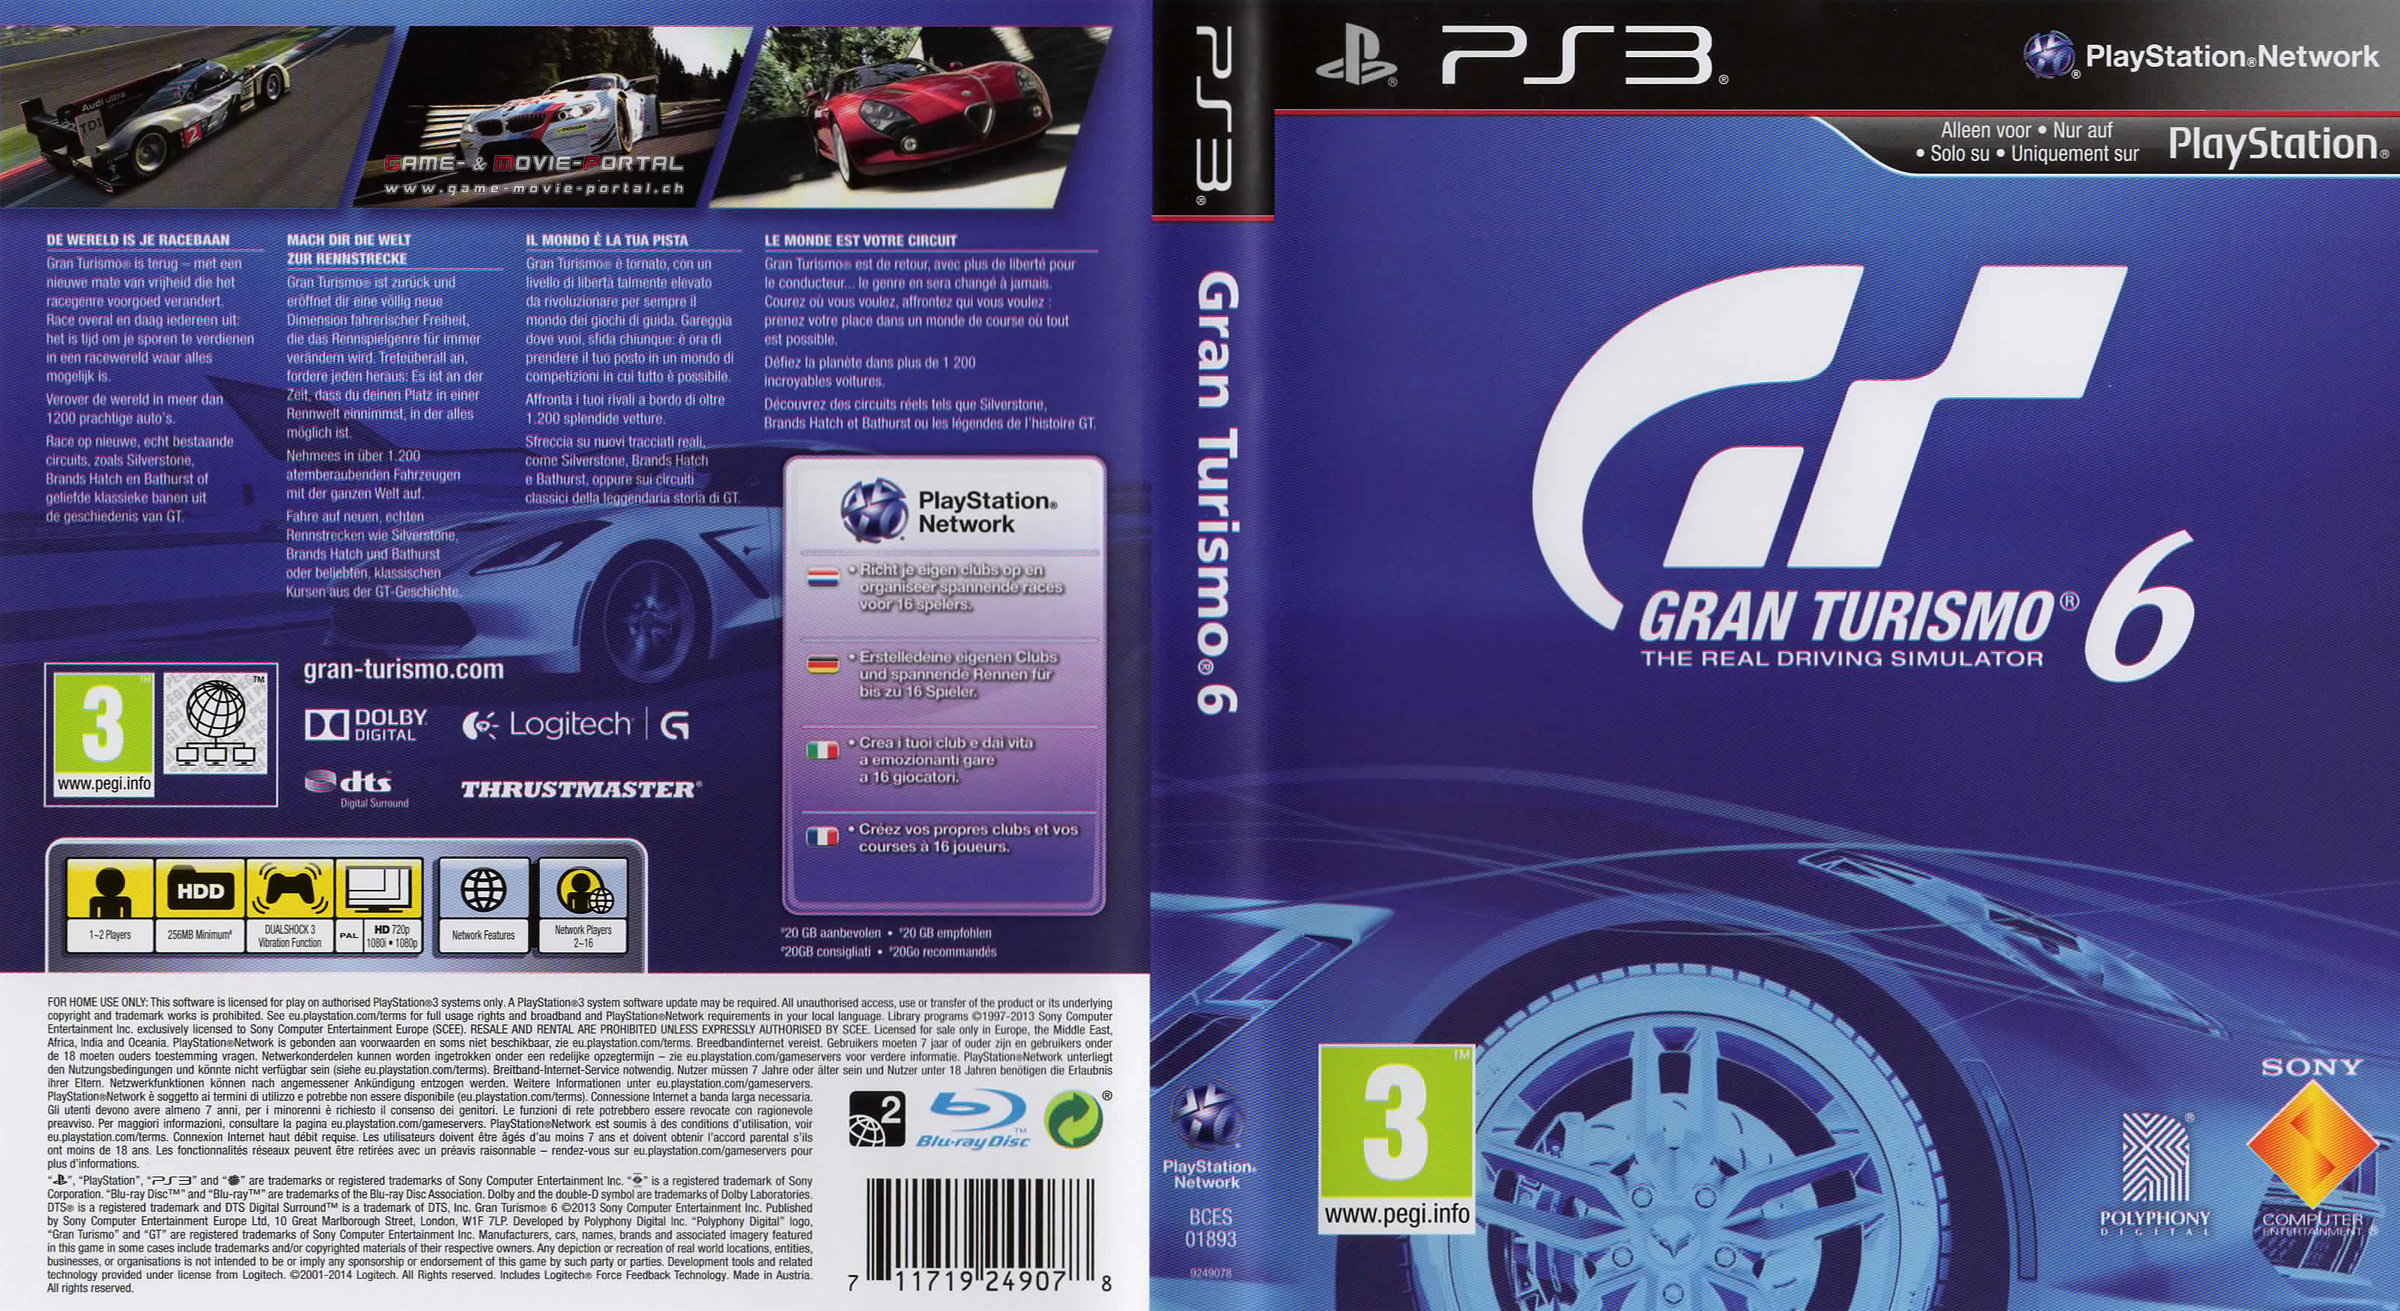 ps3 covers ghost recon tom clancy god of war collection golden axe gran turismo 6 grand. Black Bedroom Furniture Sets. Home Design Ideas